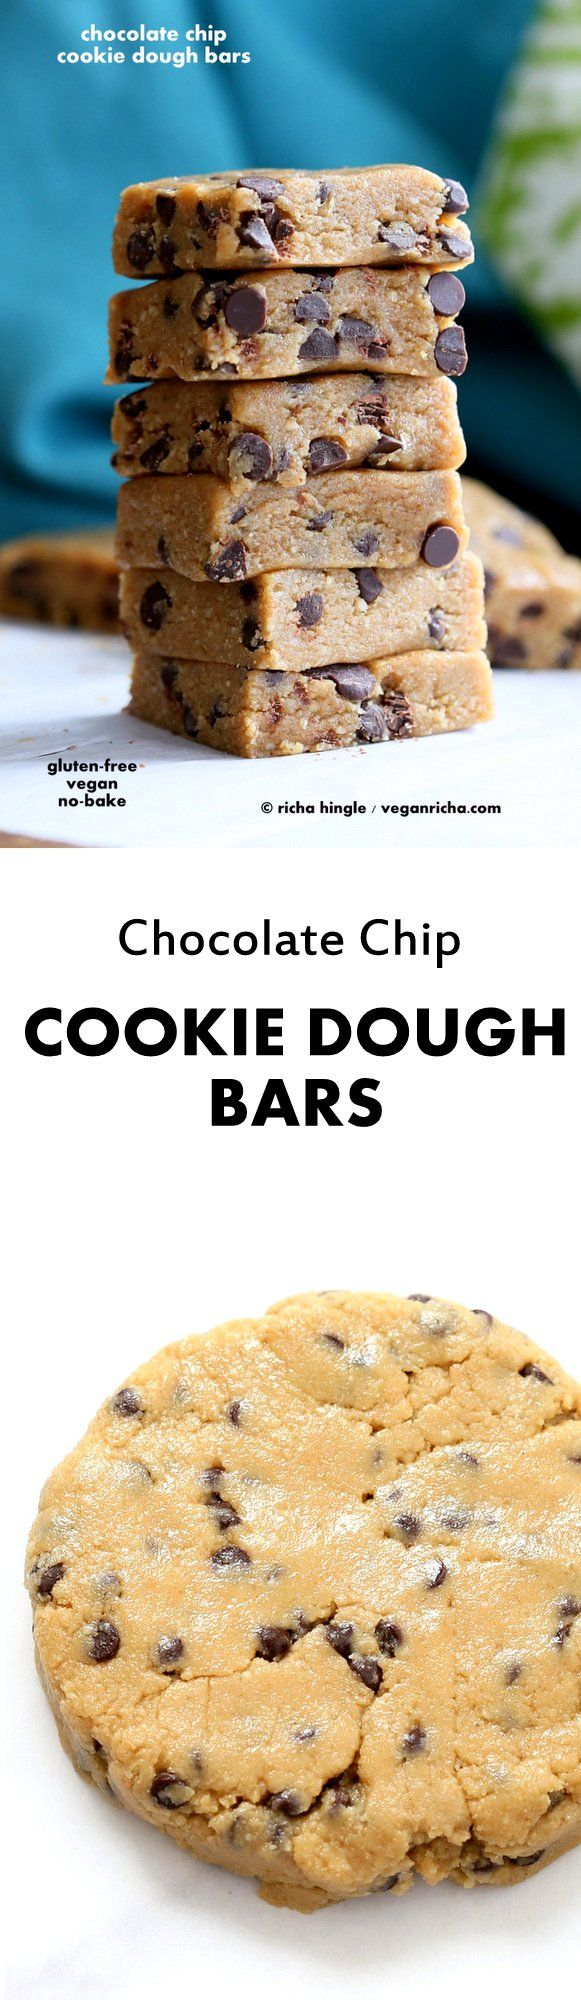 Easy Vegan Chocolate Chip Cookie Dough Bars. Gluten-free | VeganRicha.com  These babies are no-bake. If you love raw cookie dough, these should be pretty incredible.